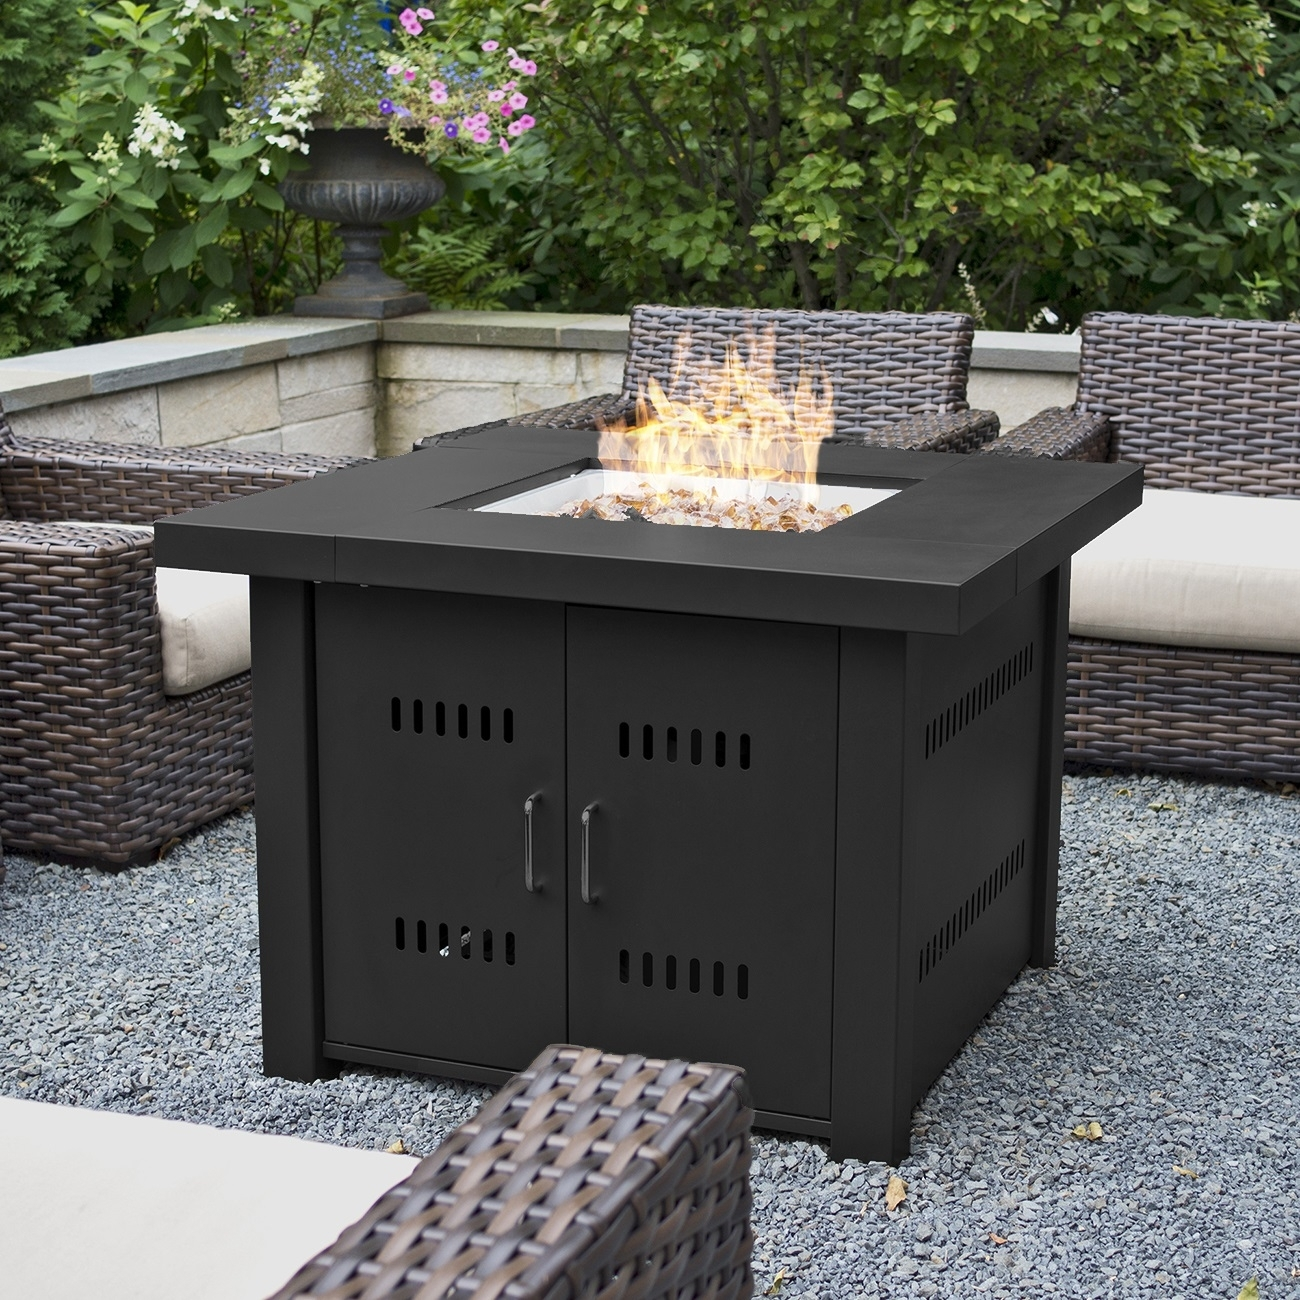 Image of: Belleze 40000btu Outdoor Patio Propane Gas Fire Pit Table W Fire Regarding Outdoor Fireplace Glass Rocks Be Warm All Year Round With Outdoor Fireplace Glass Rocks